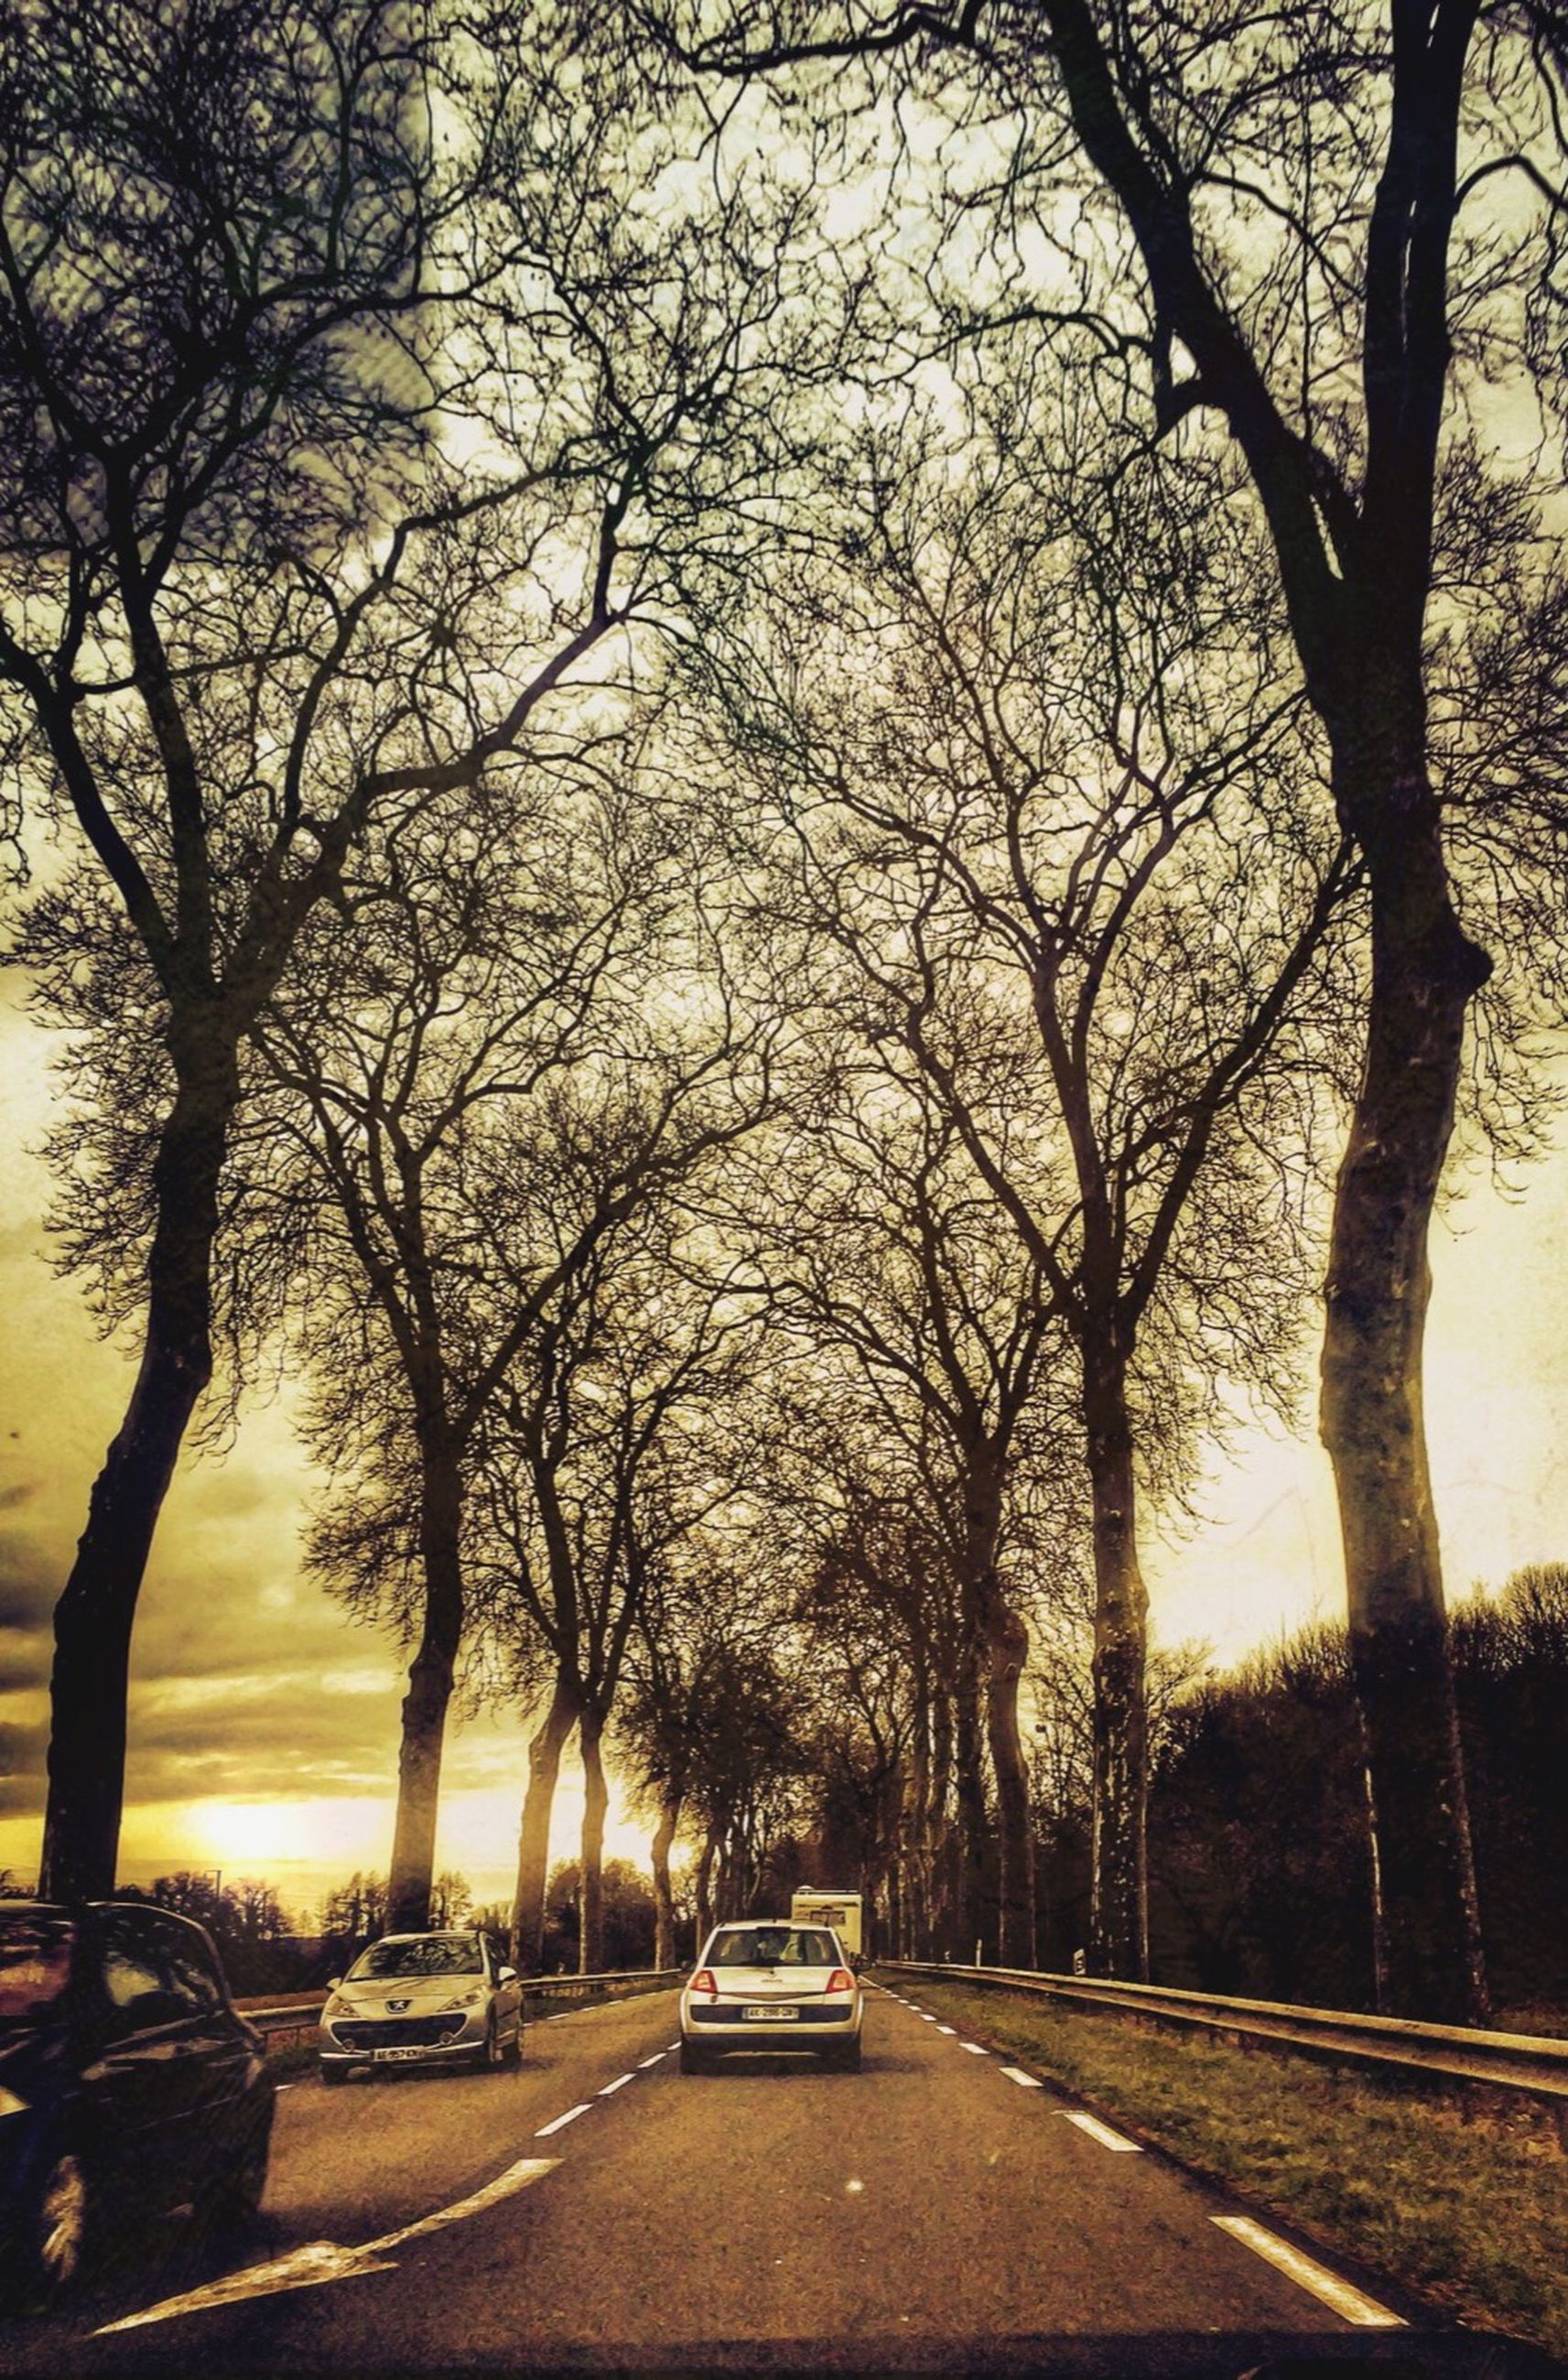 tree, transportation, the way forward, road, car, bare tree, street, land vehicle, mode of transport, treelined, branch, diminishing perspective, tree trunk, vanishing point, sunset, nature, empty, sky, tranquility, outdoors